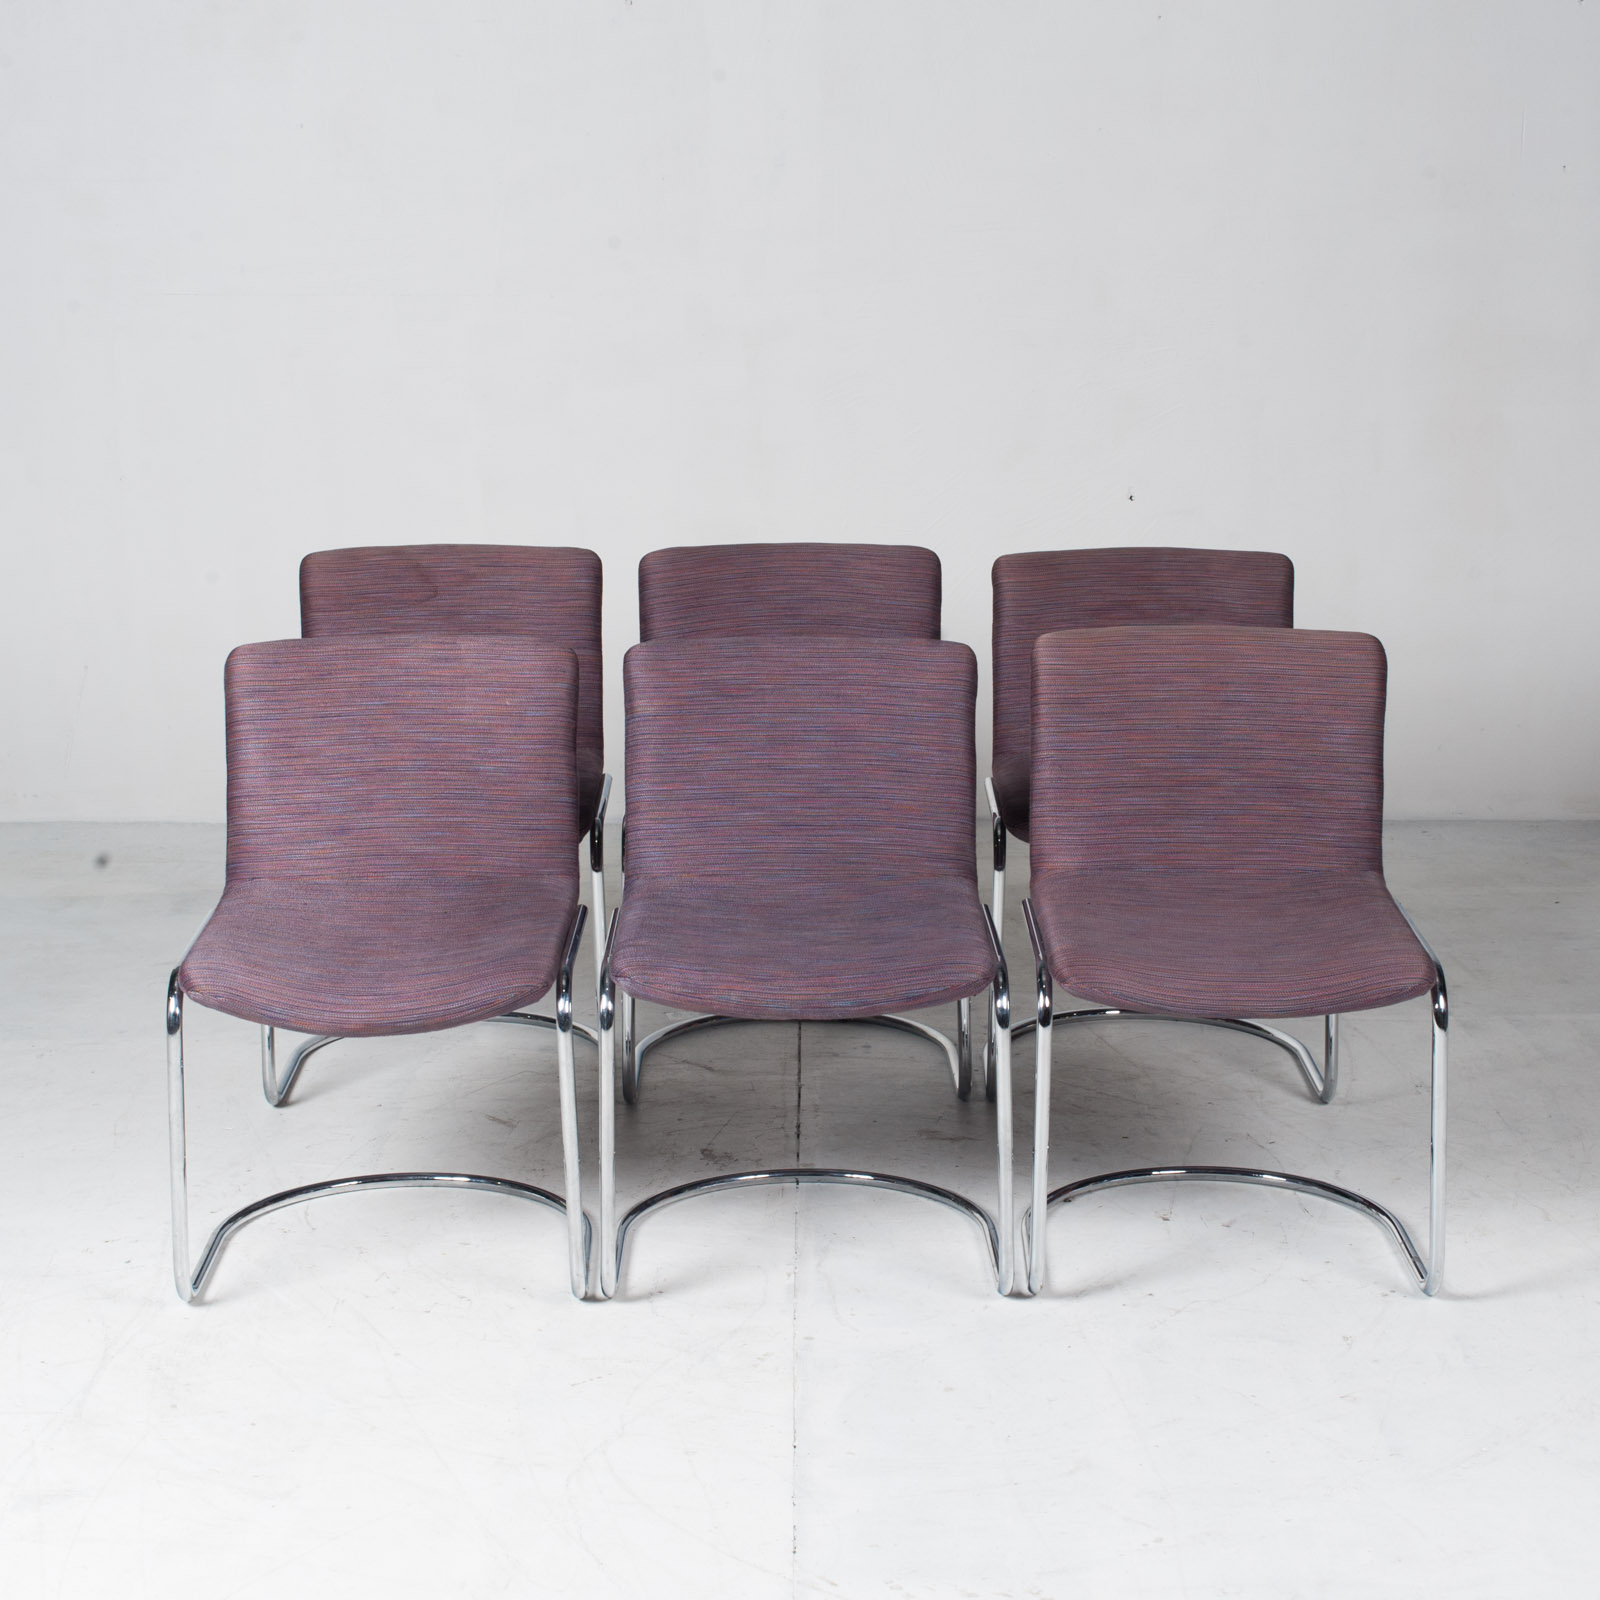 Set Of 6 Model 'lens' Dining Chairs By Giovanni Offredi For Saporiti In Chrome And Original Upholstery 1960s Italy 17